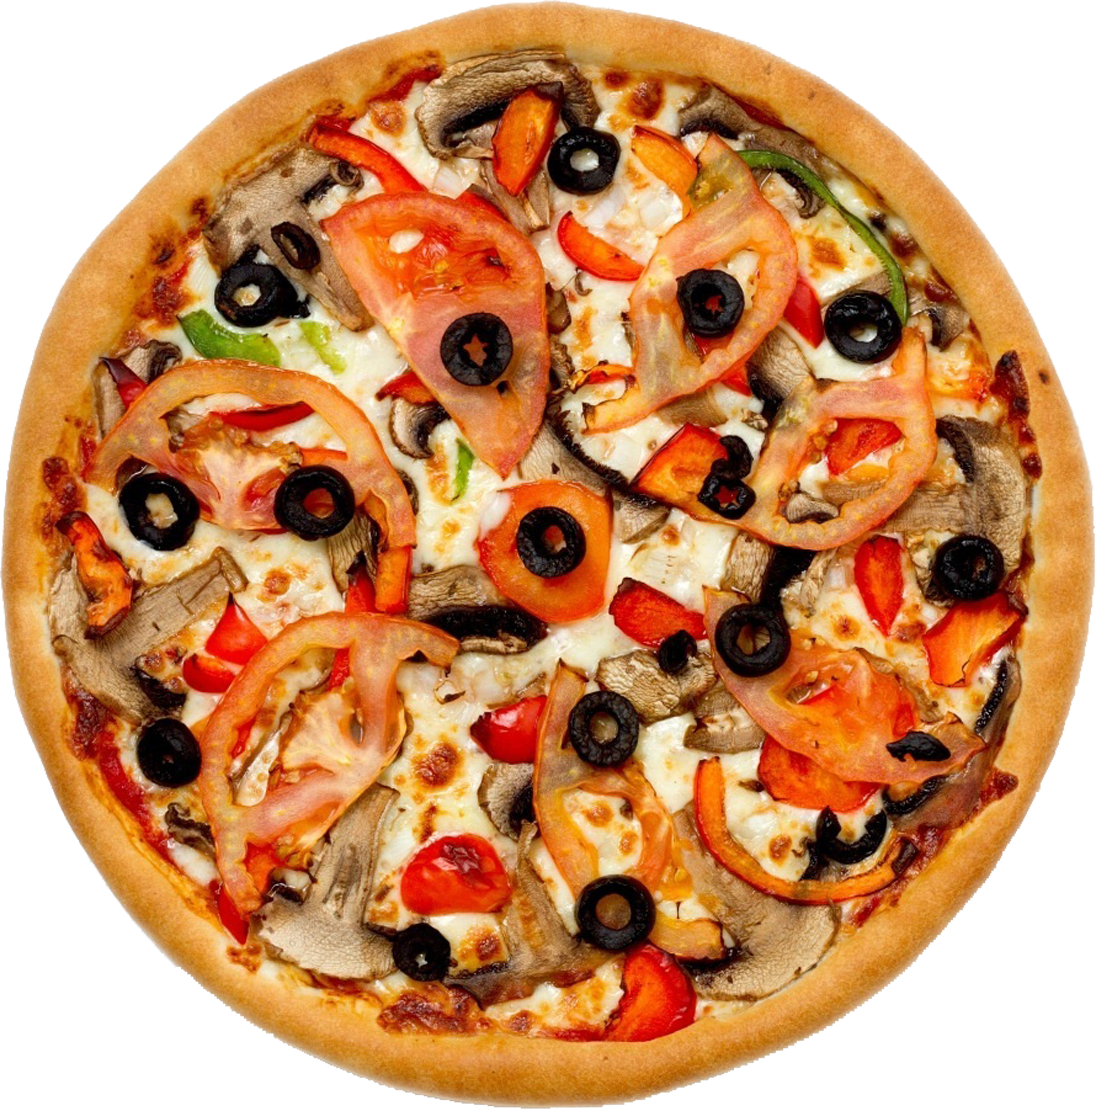 Pizza PNG image - Pizza PNG